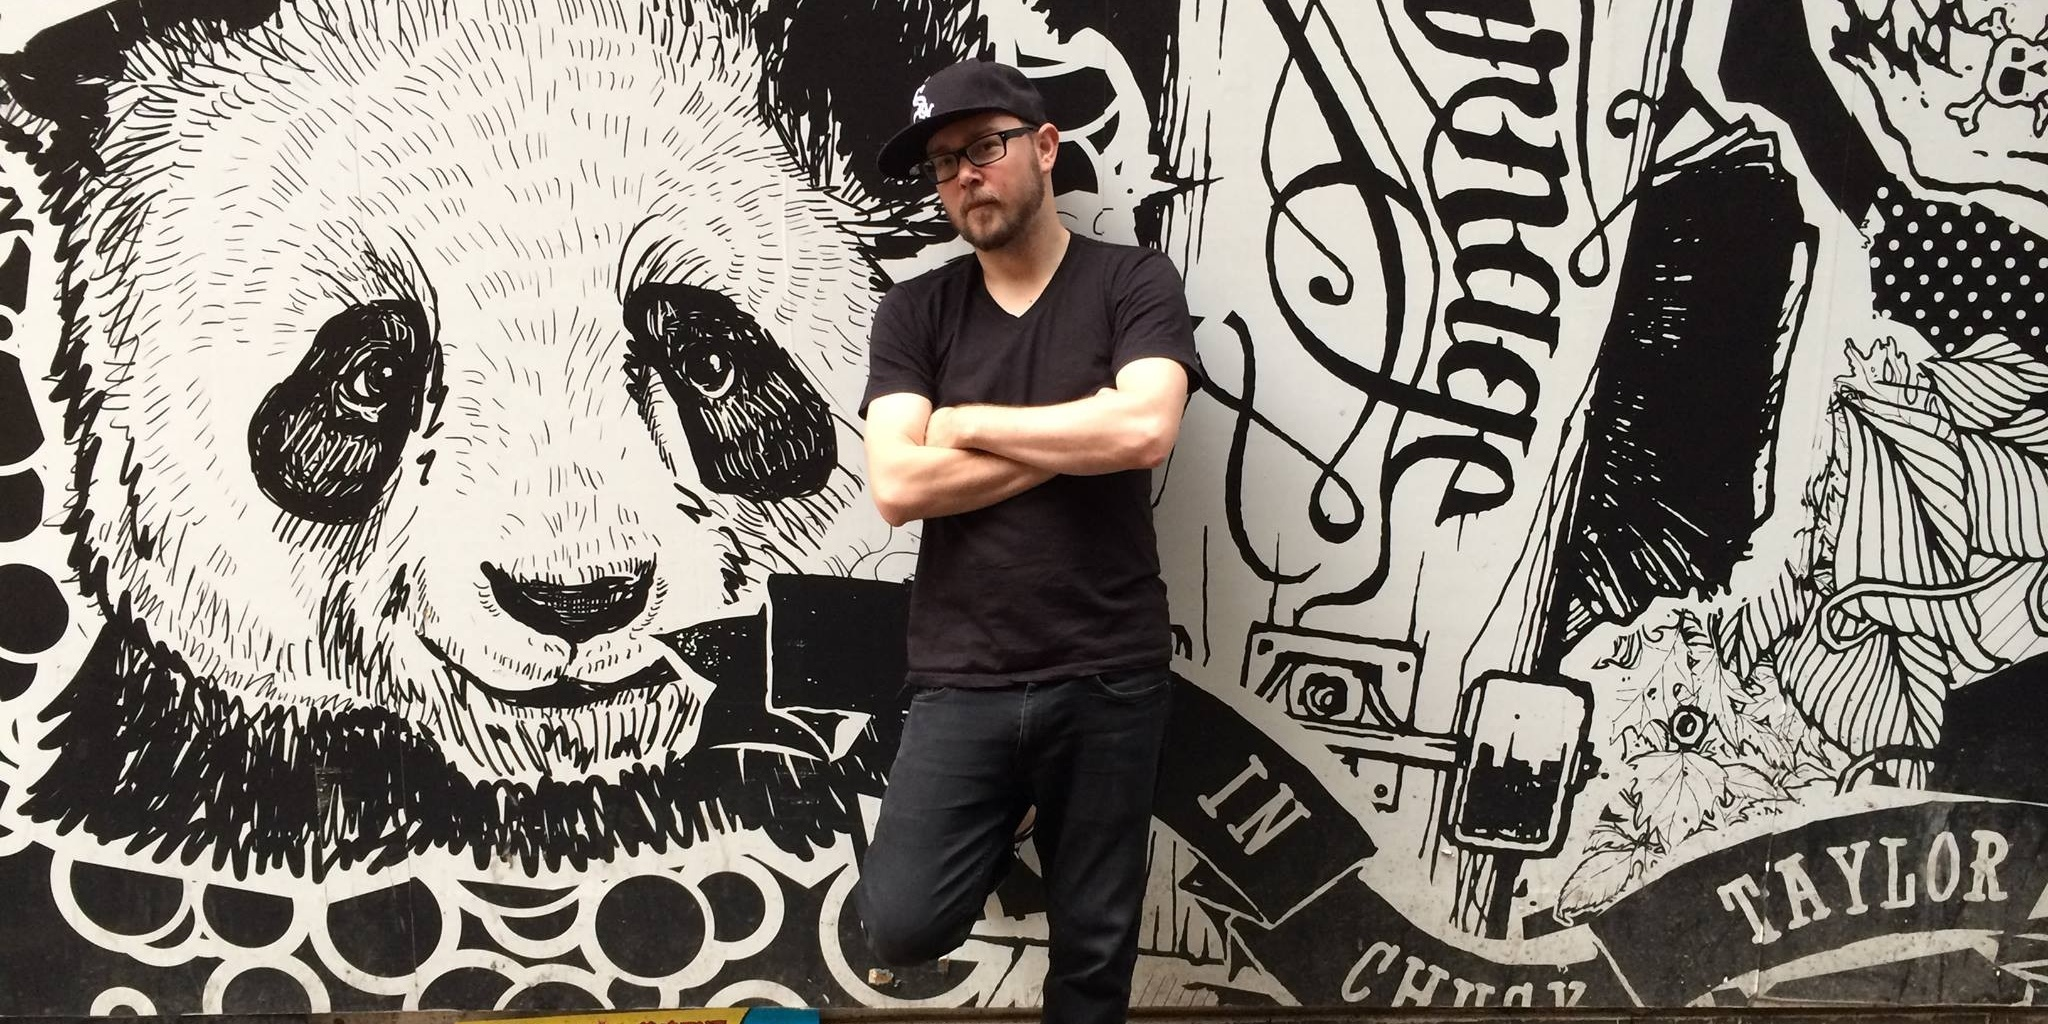 Sub City pops up at Cherry Discotheque with soulful D&B producer Dave Owen